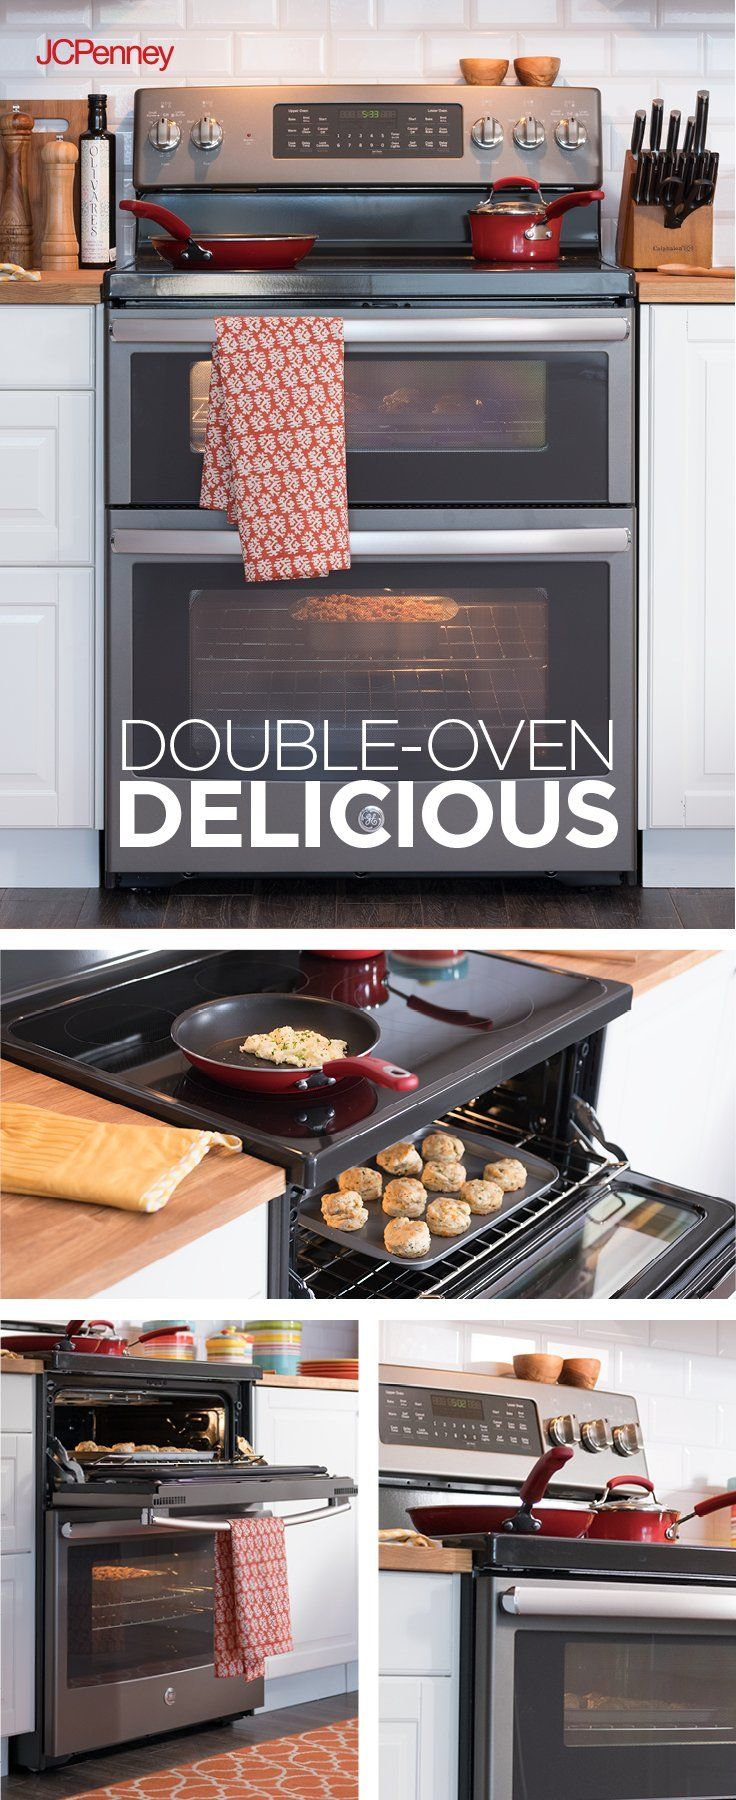 New year, new shiny  appliances! Time to get your kitchen cooking with gas. Make quick work of Sunday dinner with a sleek new GE® free-standing gas range with double ovens. The edge-to-edge cooktop and dual purpose center burner mean even your biggest dishes are no match for this oven. Additionally, if you find a lower currently advertised price on an identical range within 14 days after purchase from a competitor, JCPenney will beat that price by 5%.